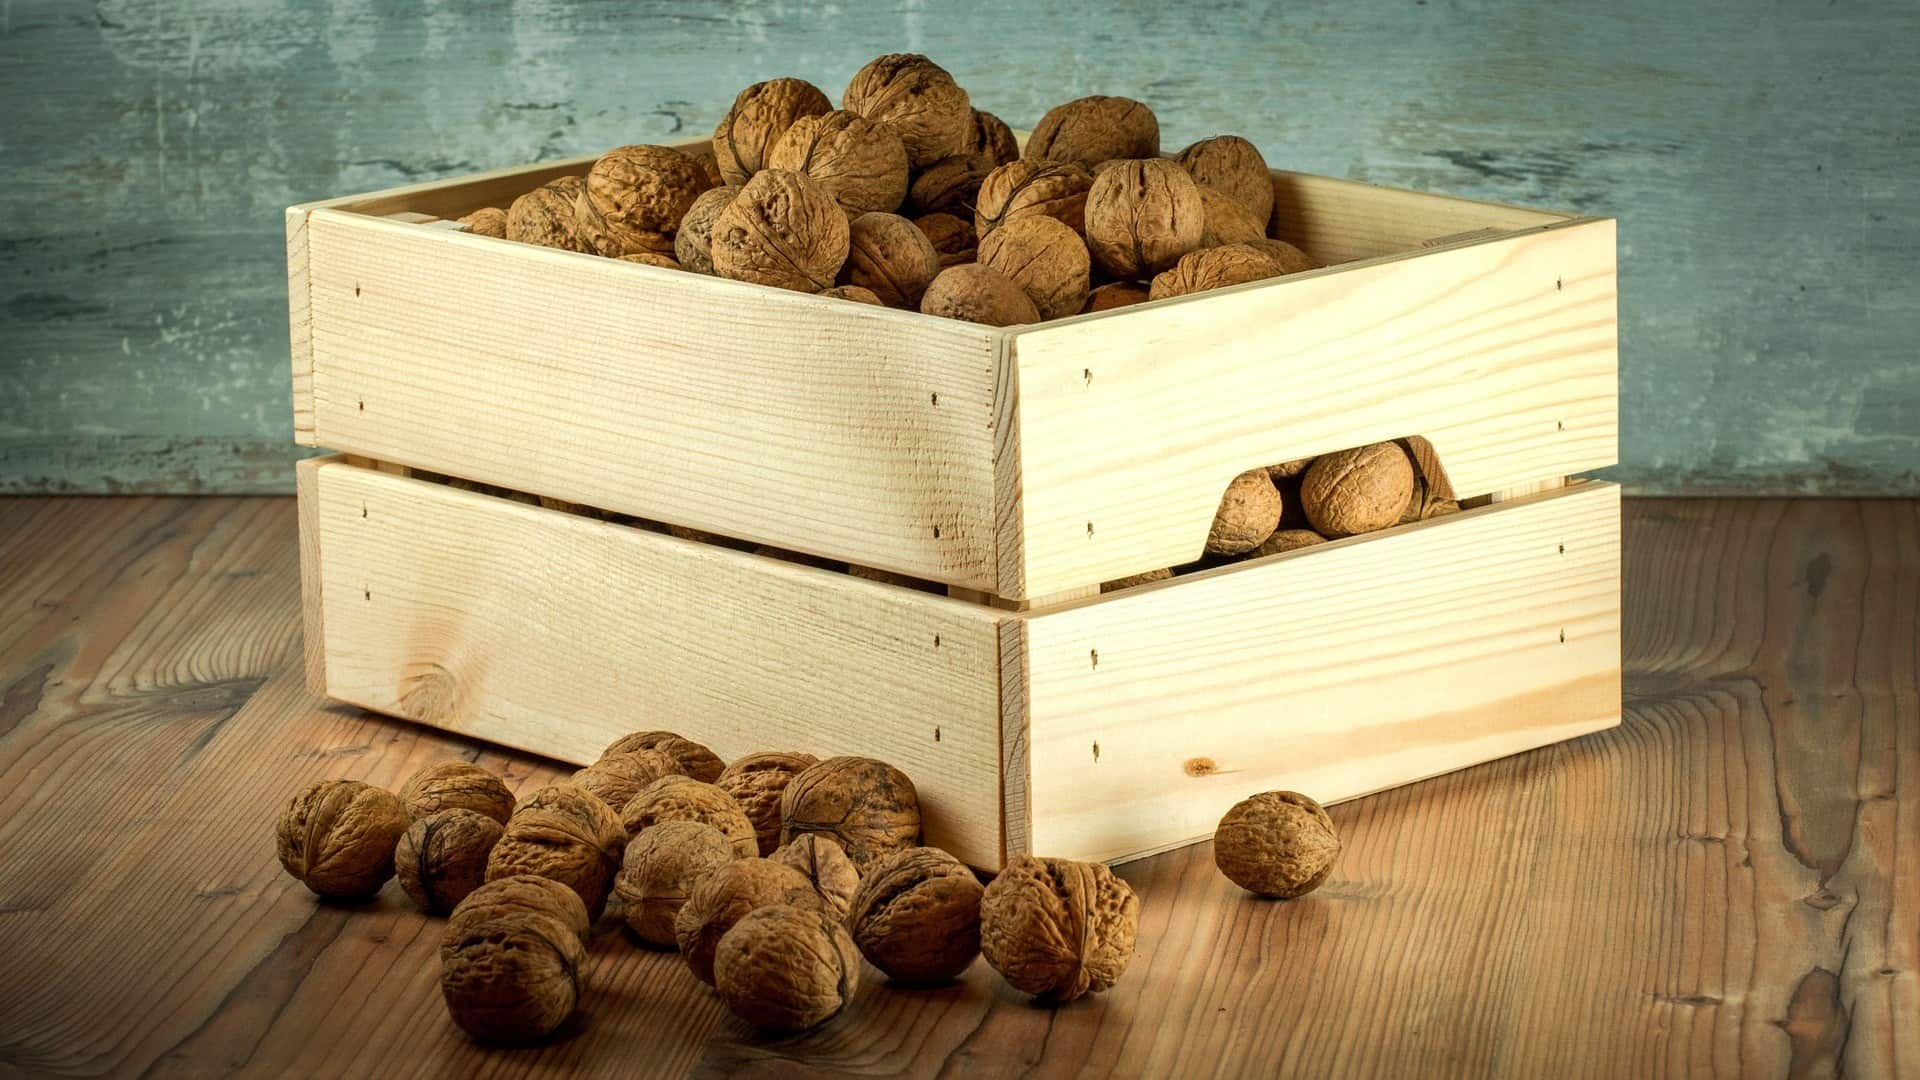 Nuts help to suppress the feeling of hunger